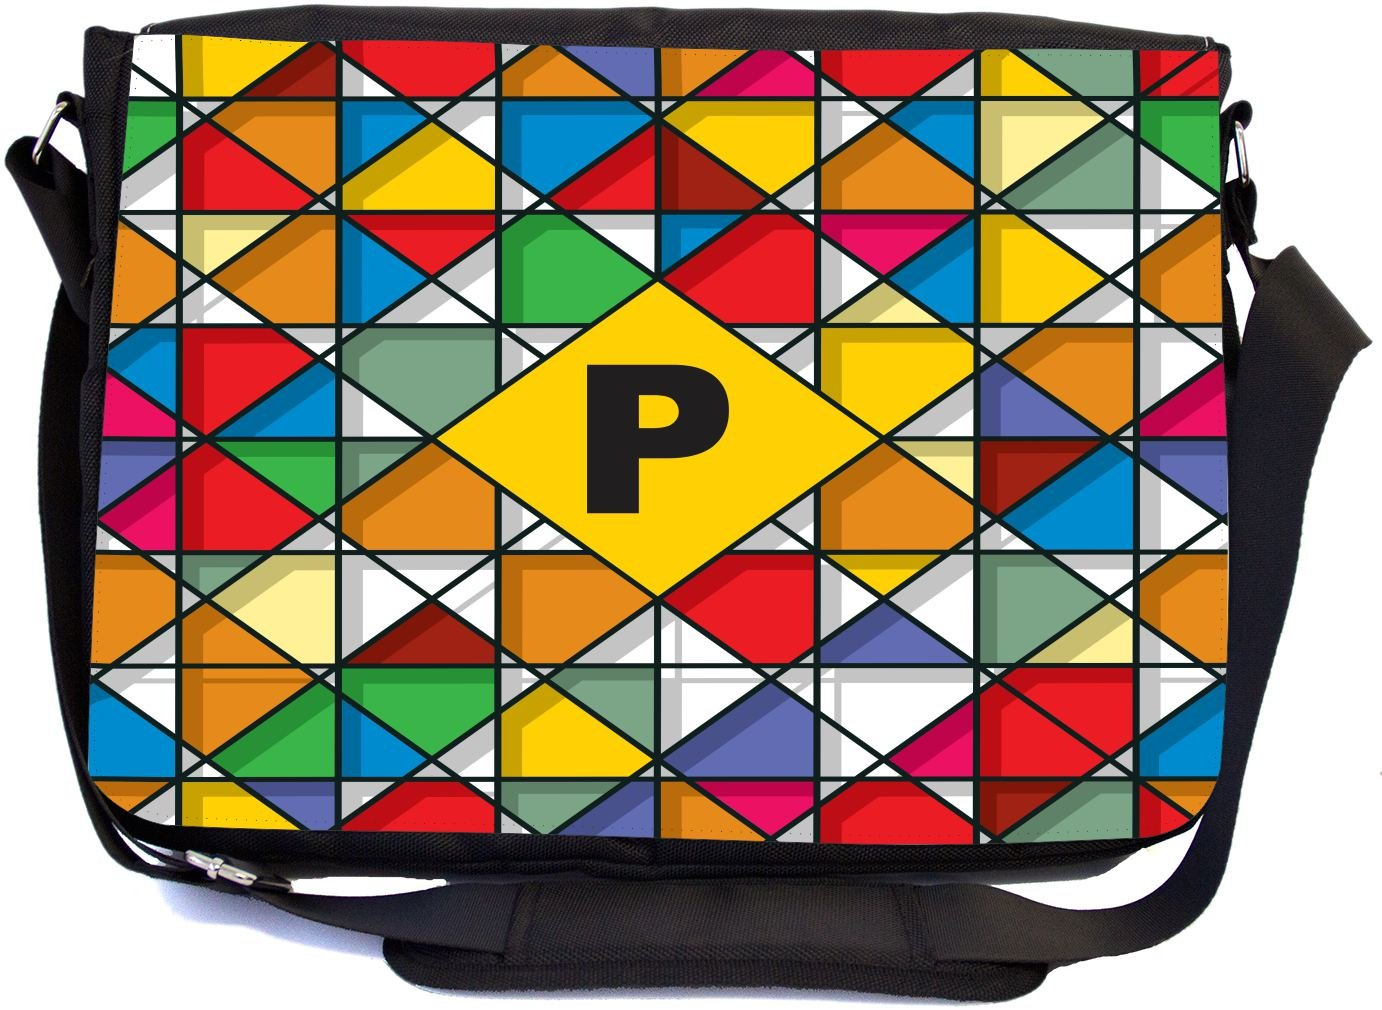 Rikki Knight Letter P Monogram Vibrant Colors Stained Glass Design Design Combo Multifunction Messenger Laptop Bag - with Padded Insert for School or Work - Includes Wristlet & Mirror